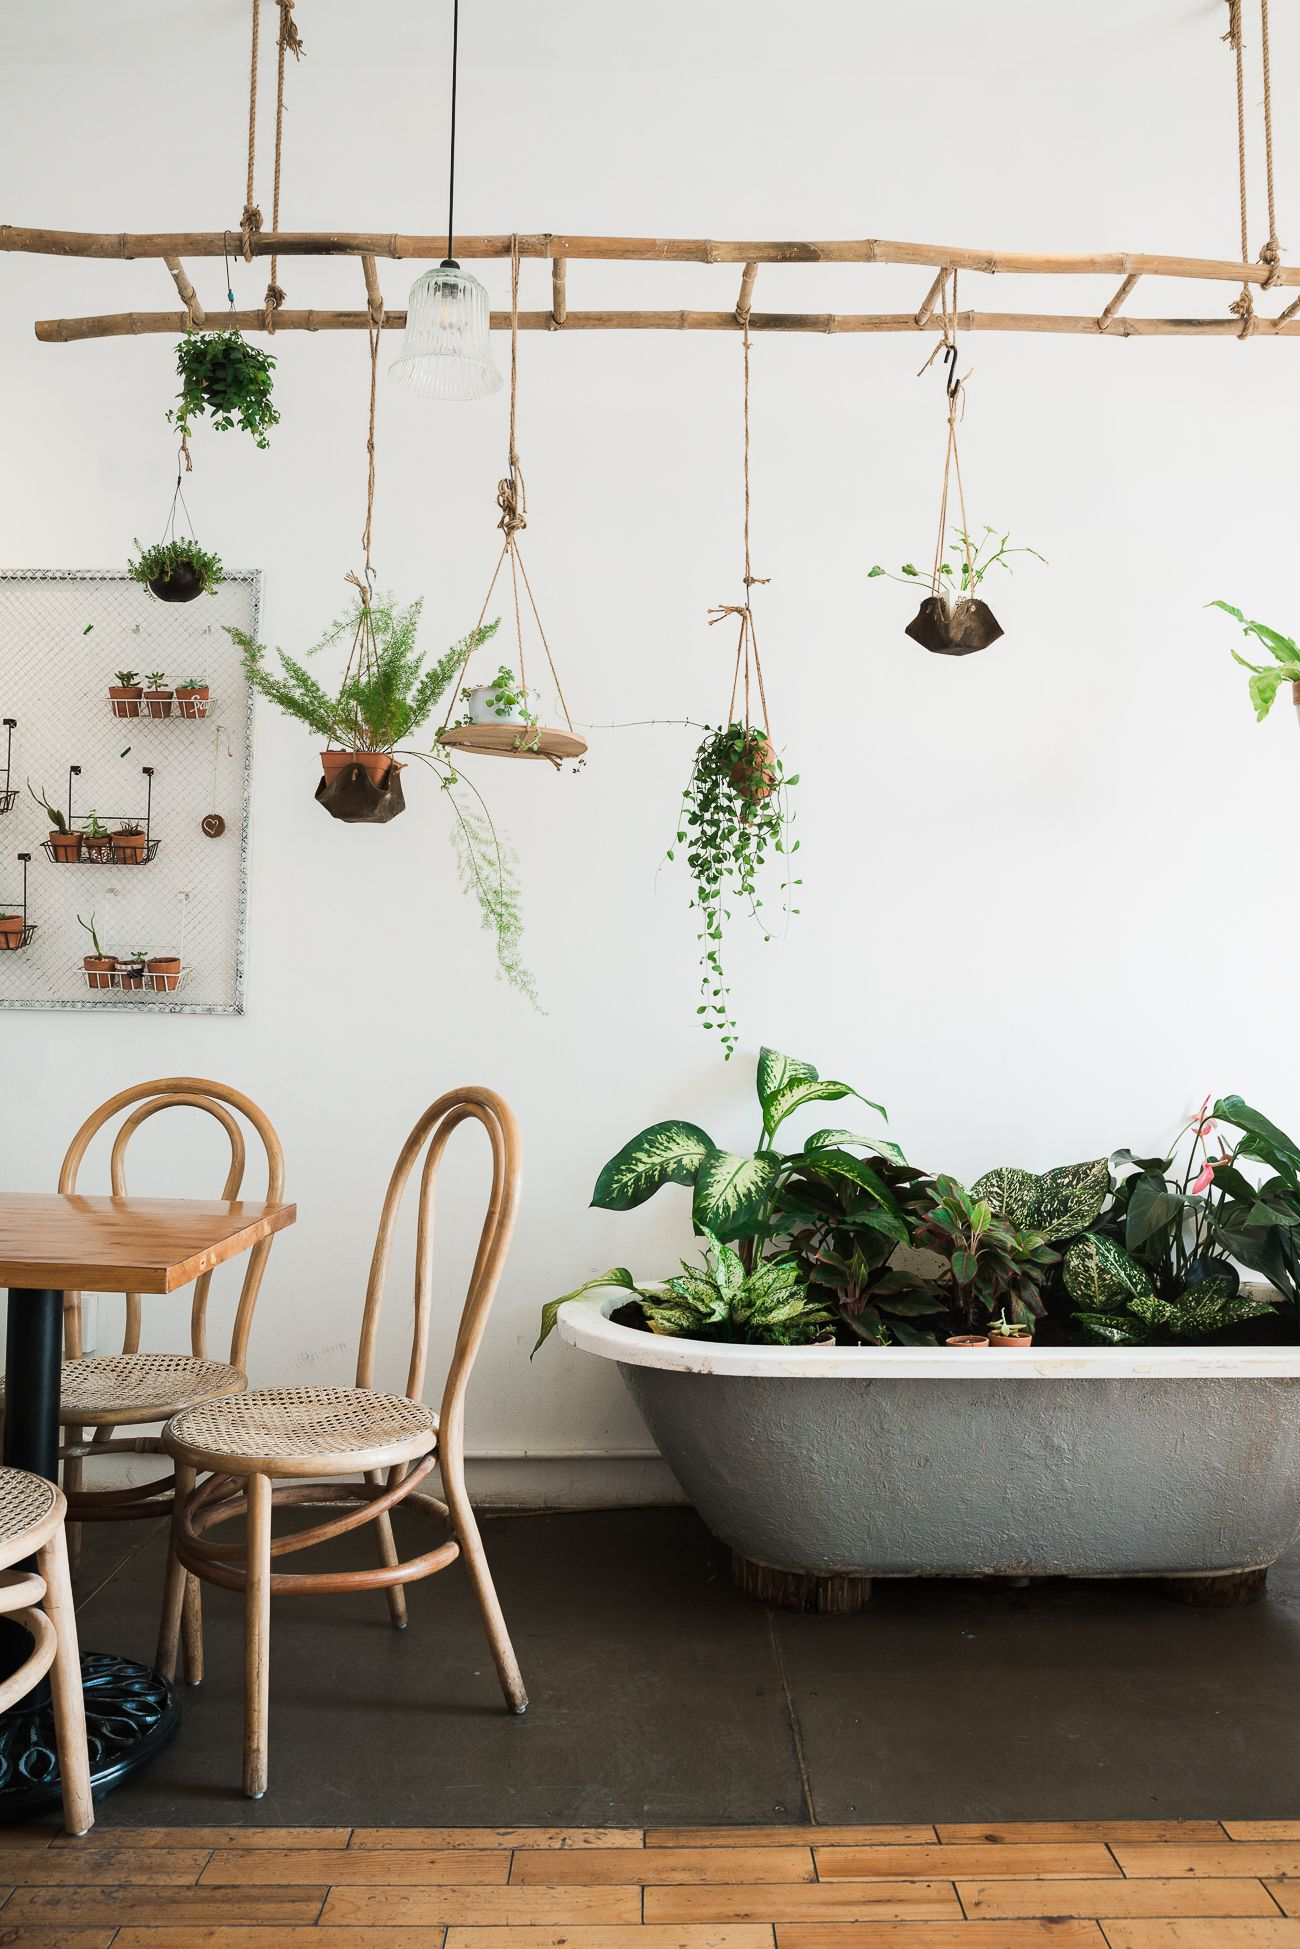 Inspiration d co l invasion des plantes vertes for Deco interieur plante verte